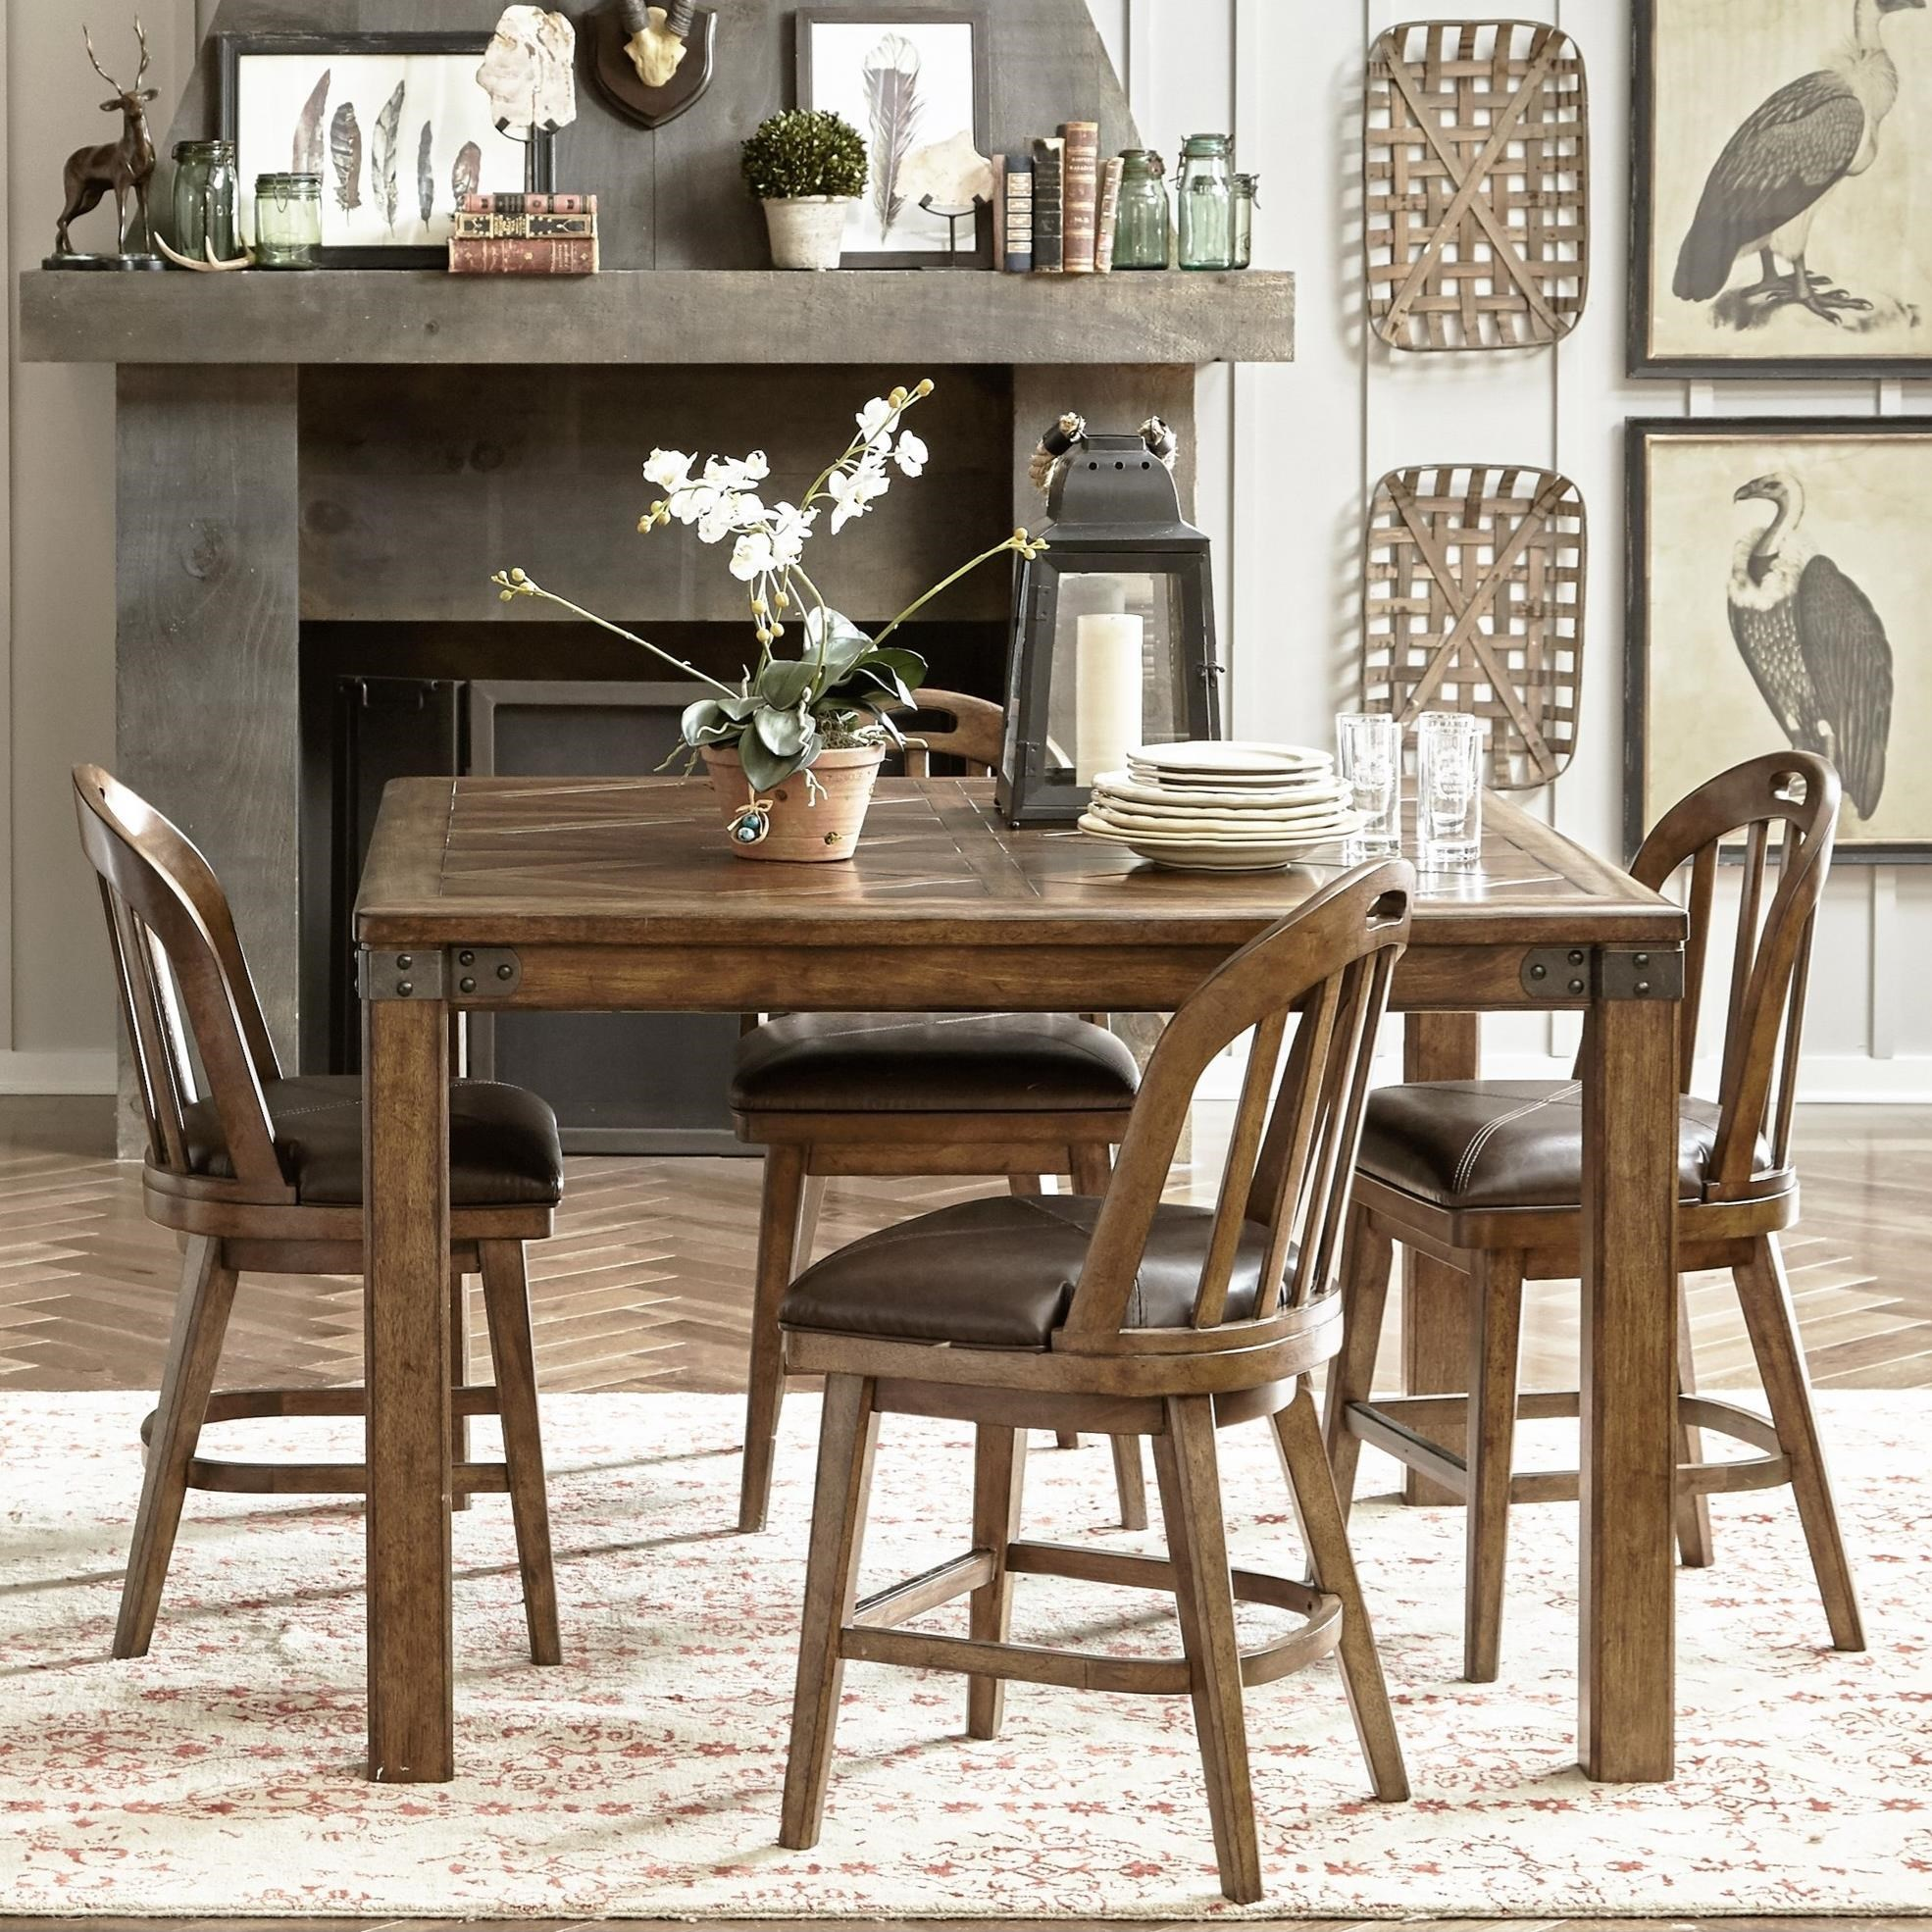 eric highway to home by pulaski eric church heartland falls 5 piece gathering table and windsor chair set darvin furniture pub table and stool